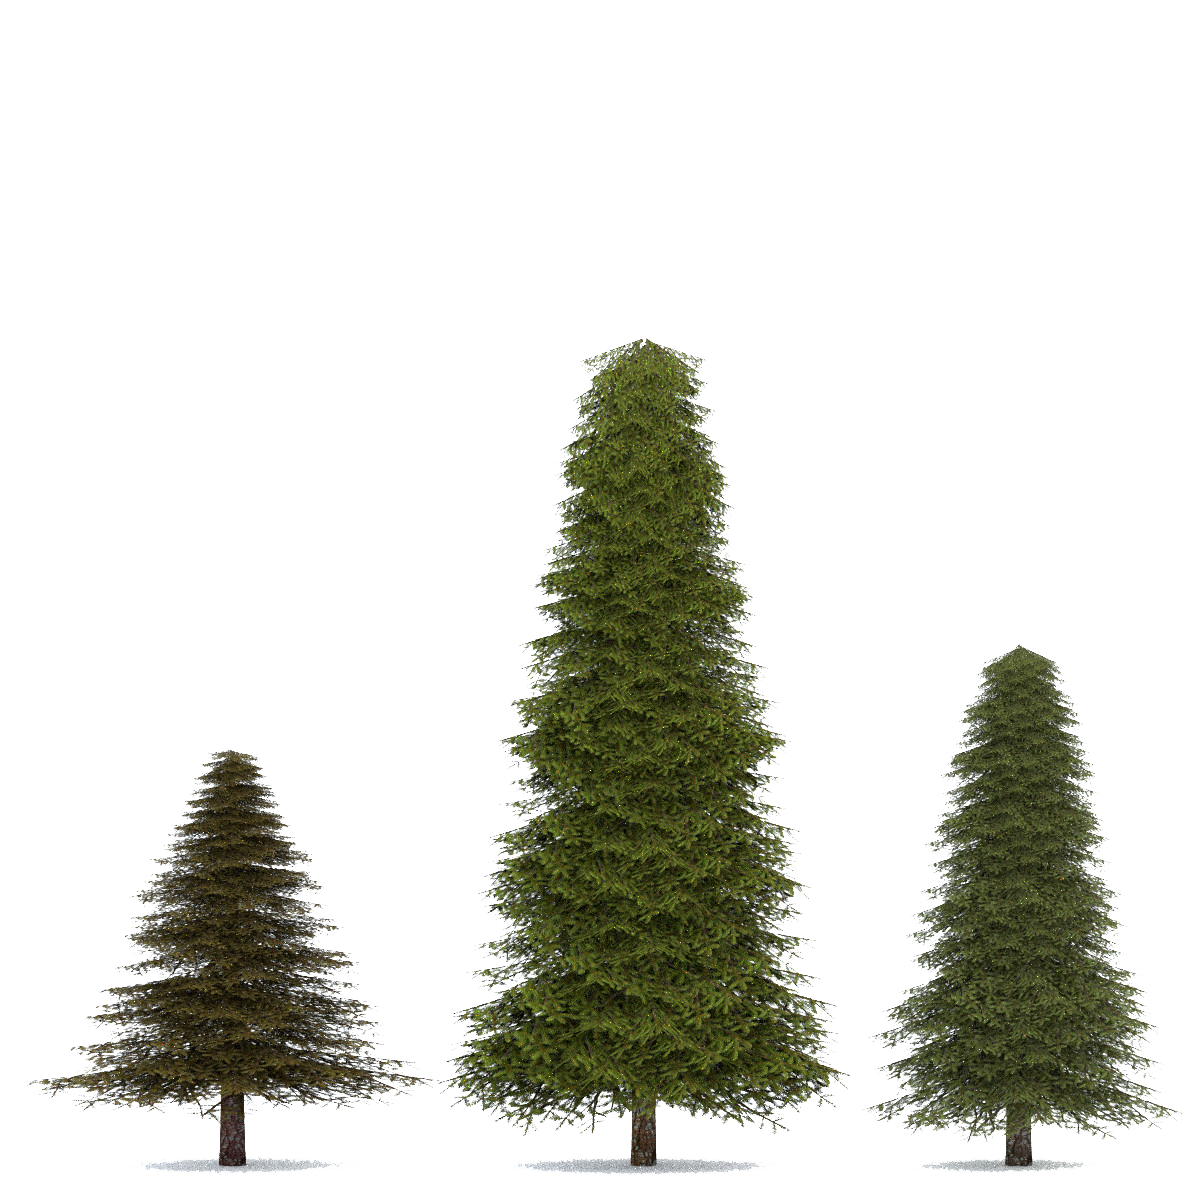 Fir-Tree Transparent Image PNG Image